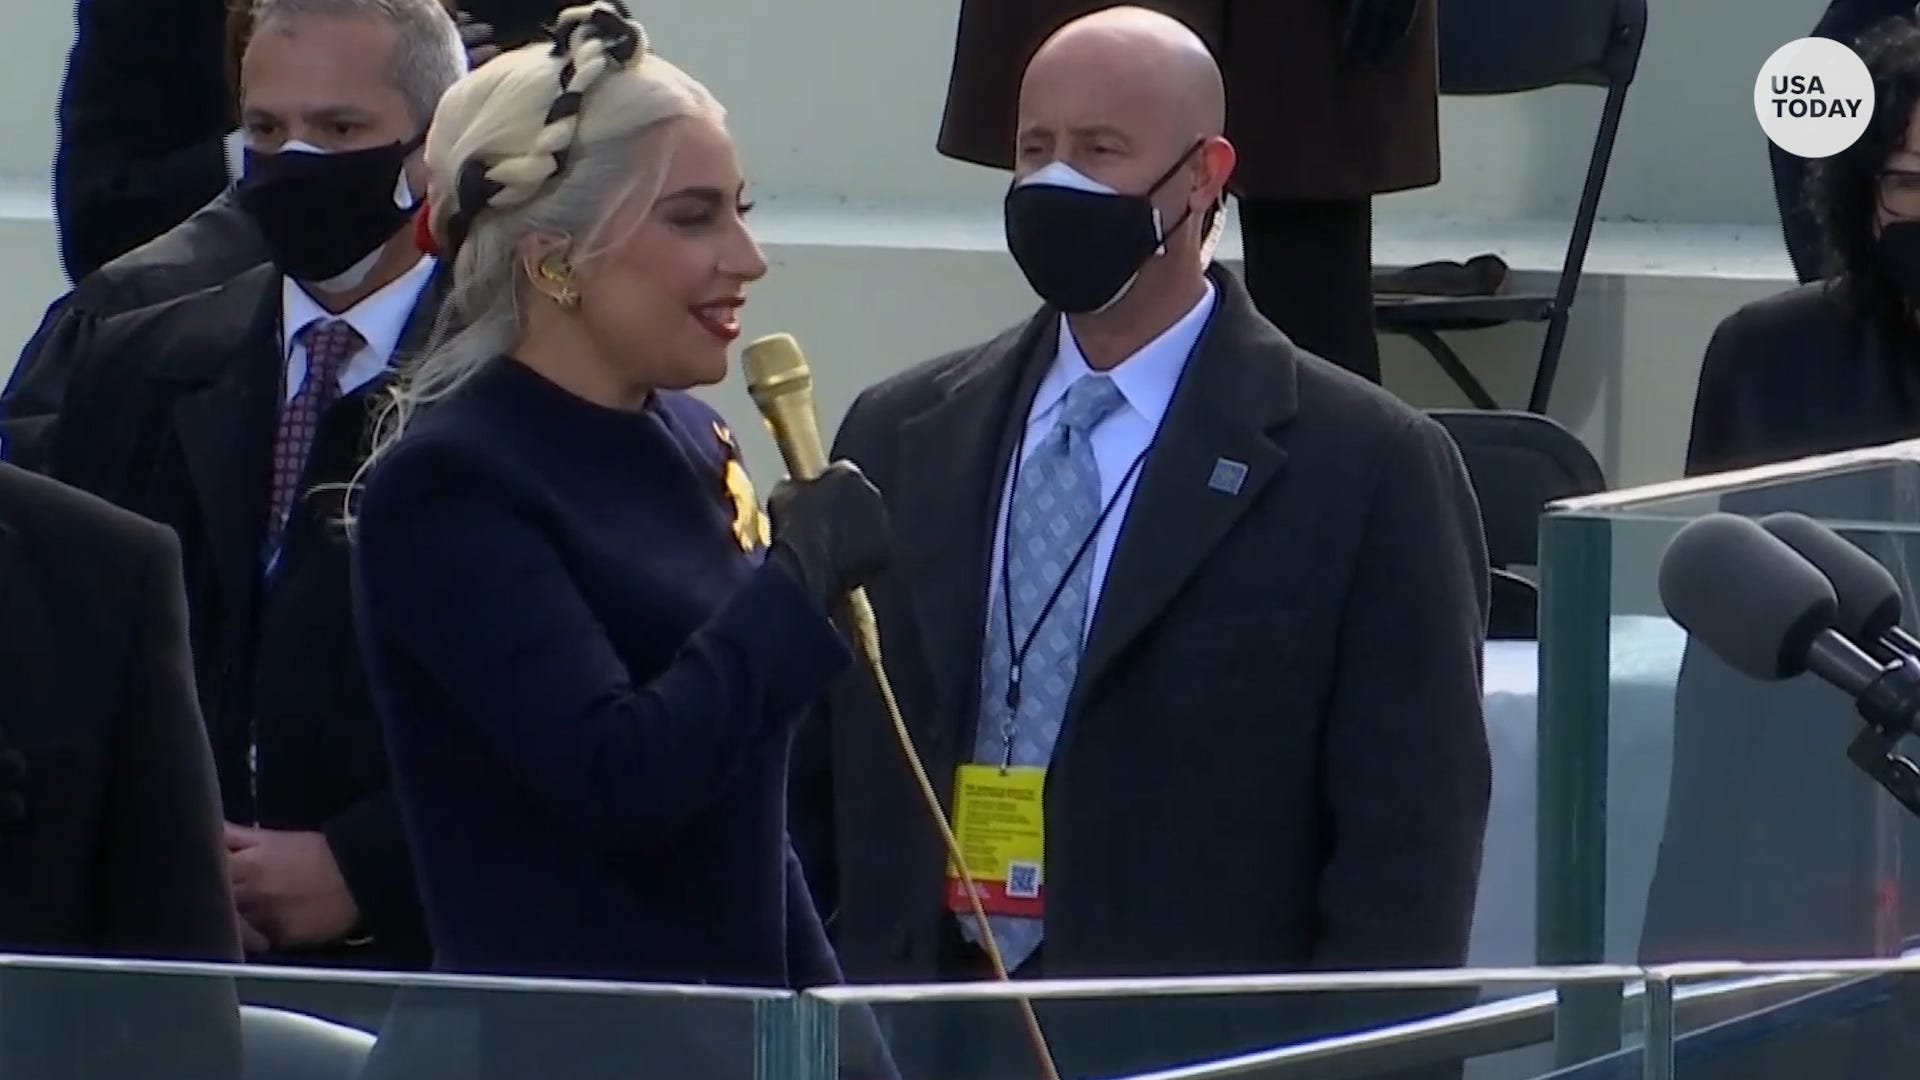 Lady Gaga sings the national anthem before Joe Biden, Kamala Harris take oath